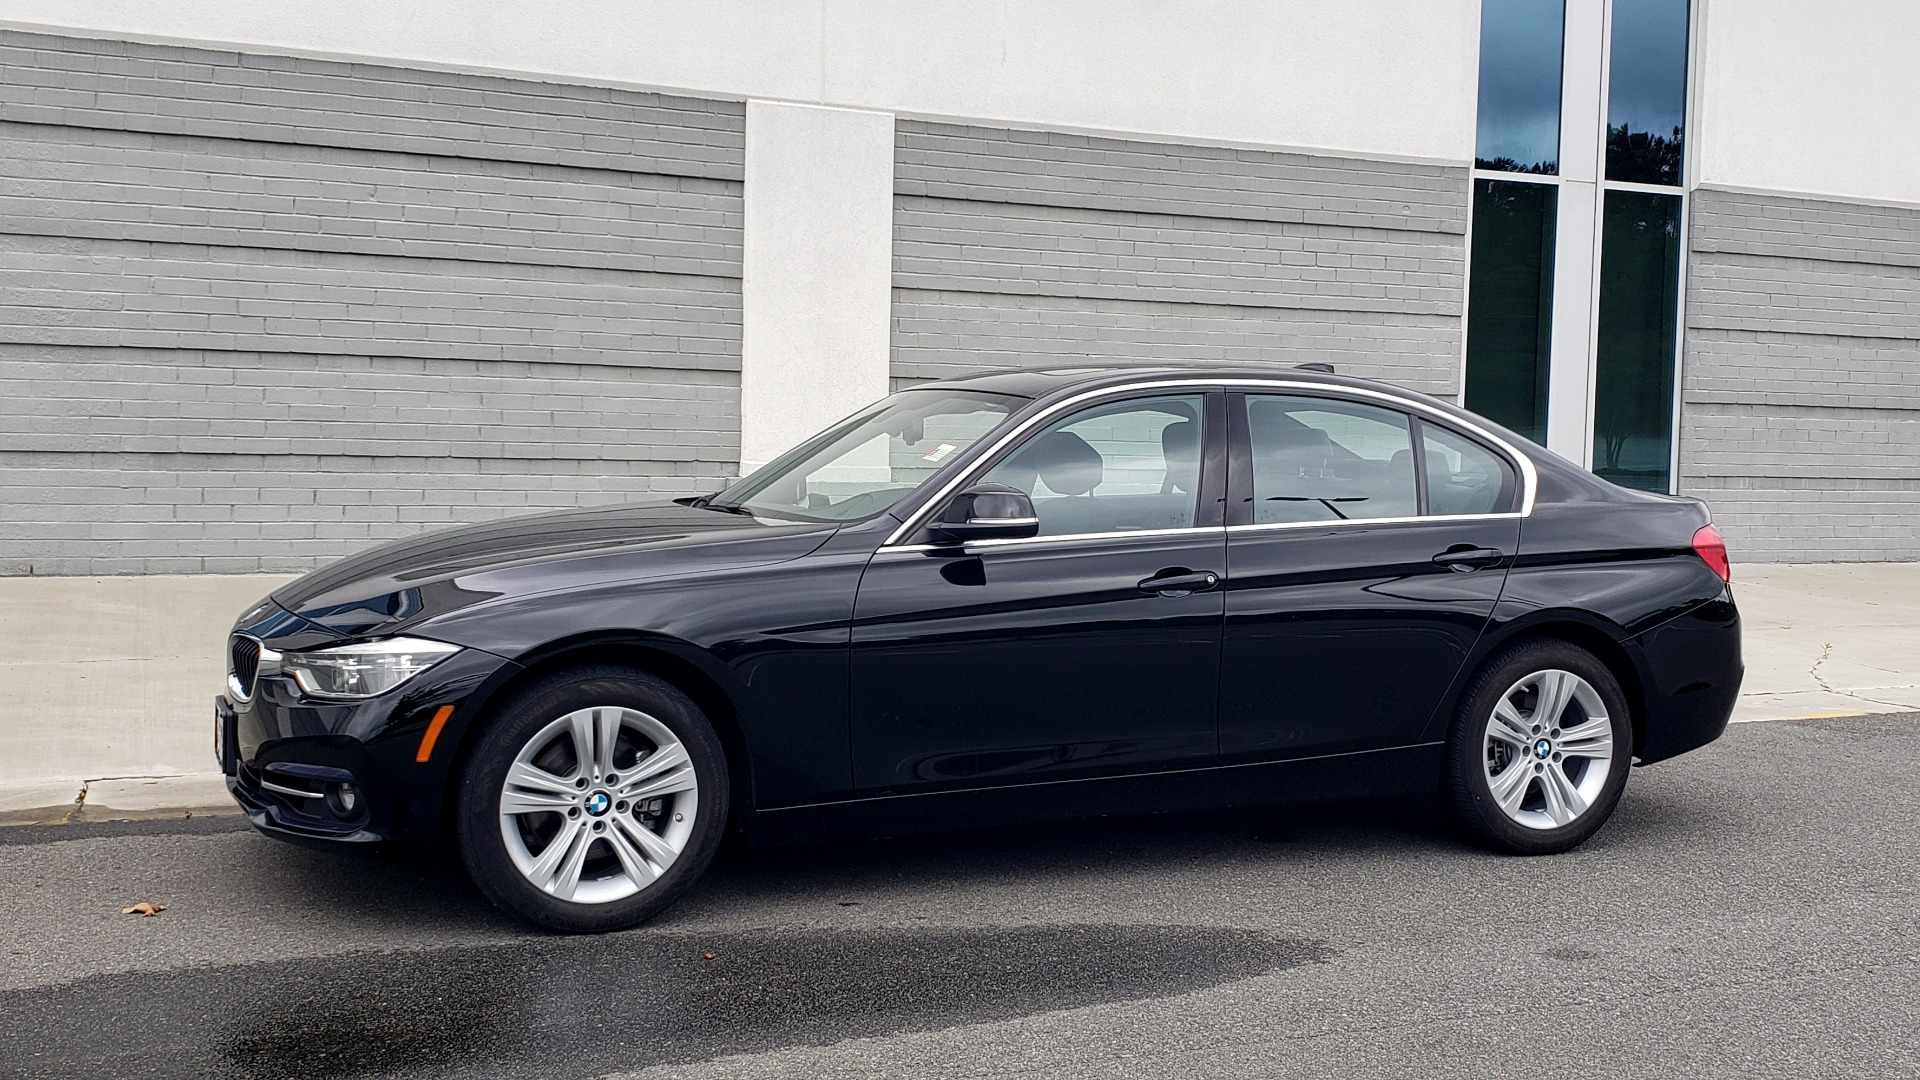 Used 2018 BMW 3 SERIES 330IXDRIVE / CONV PKG / NAV / SUNROOF / HTD STS / REARVIEW for sale $26,552 at Formula Imports in Charlotte NC 28227 4